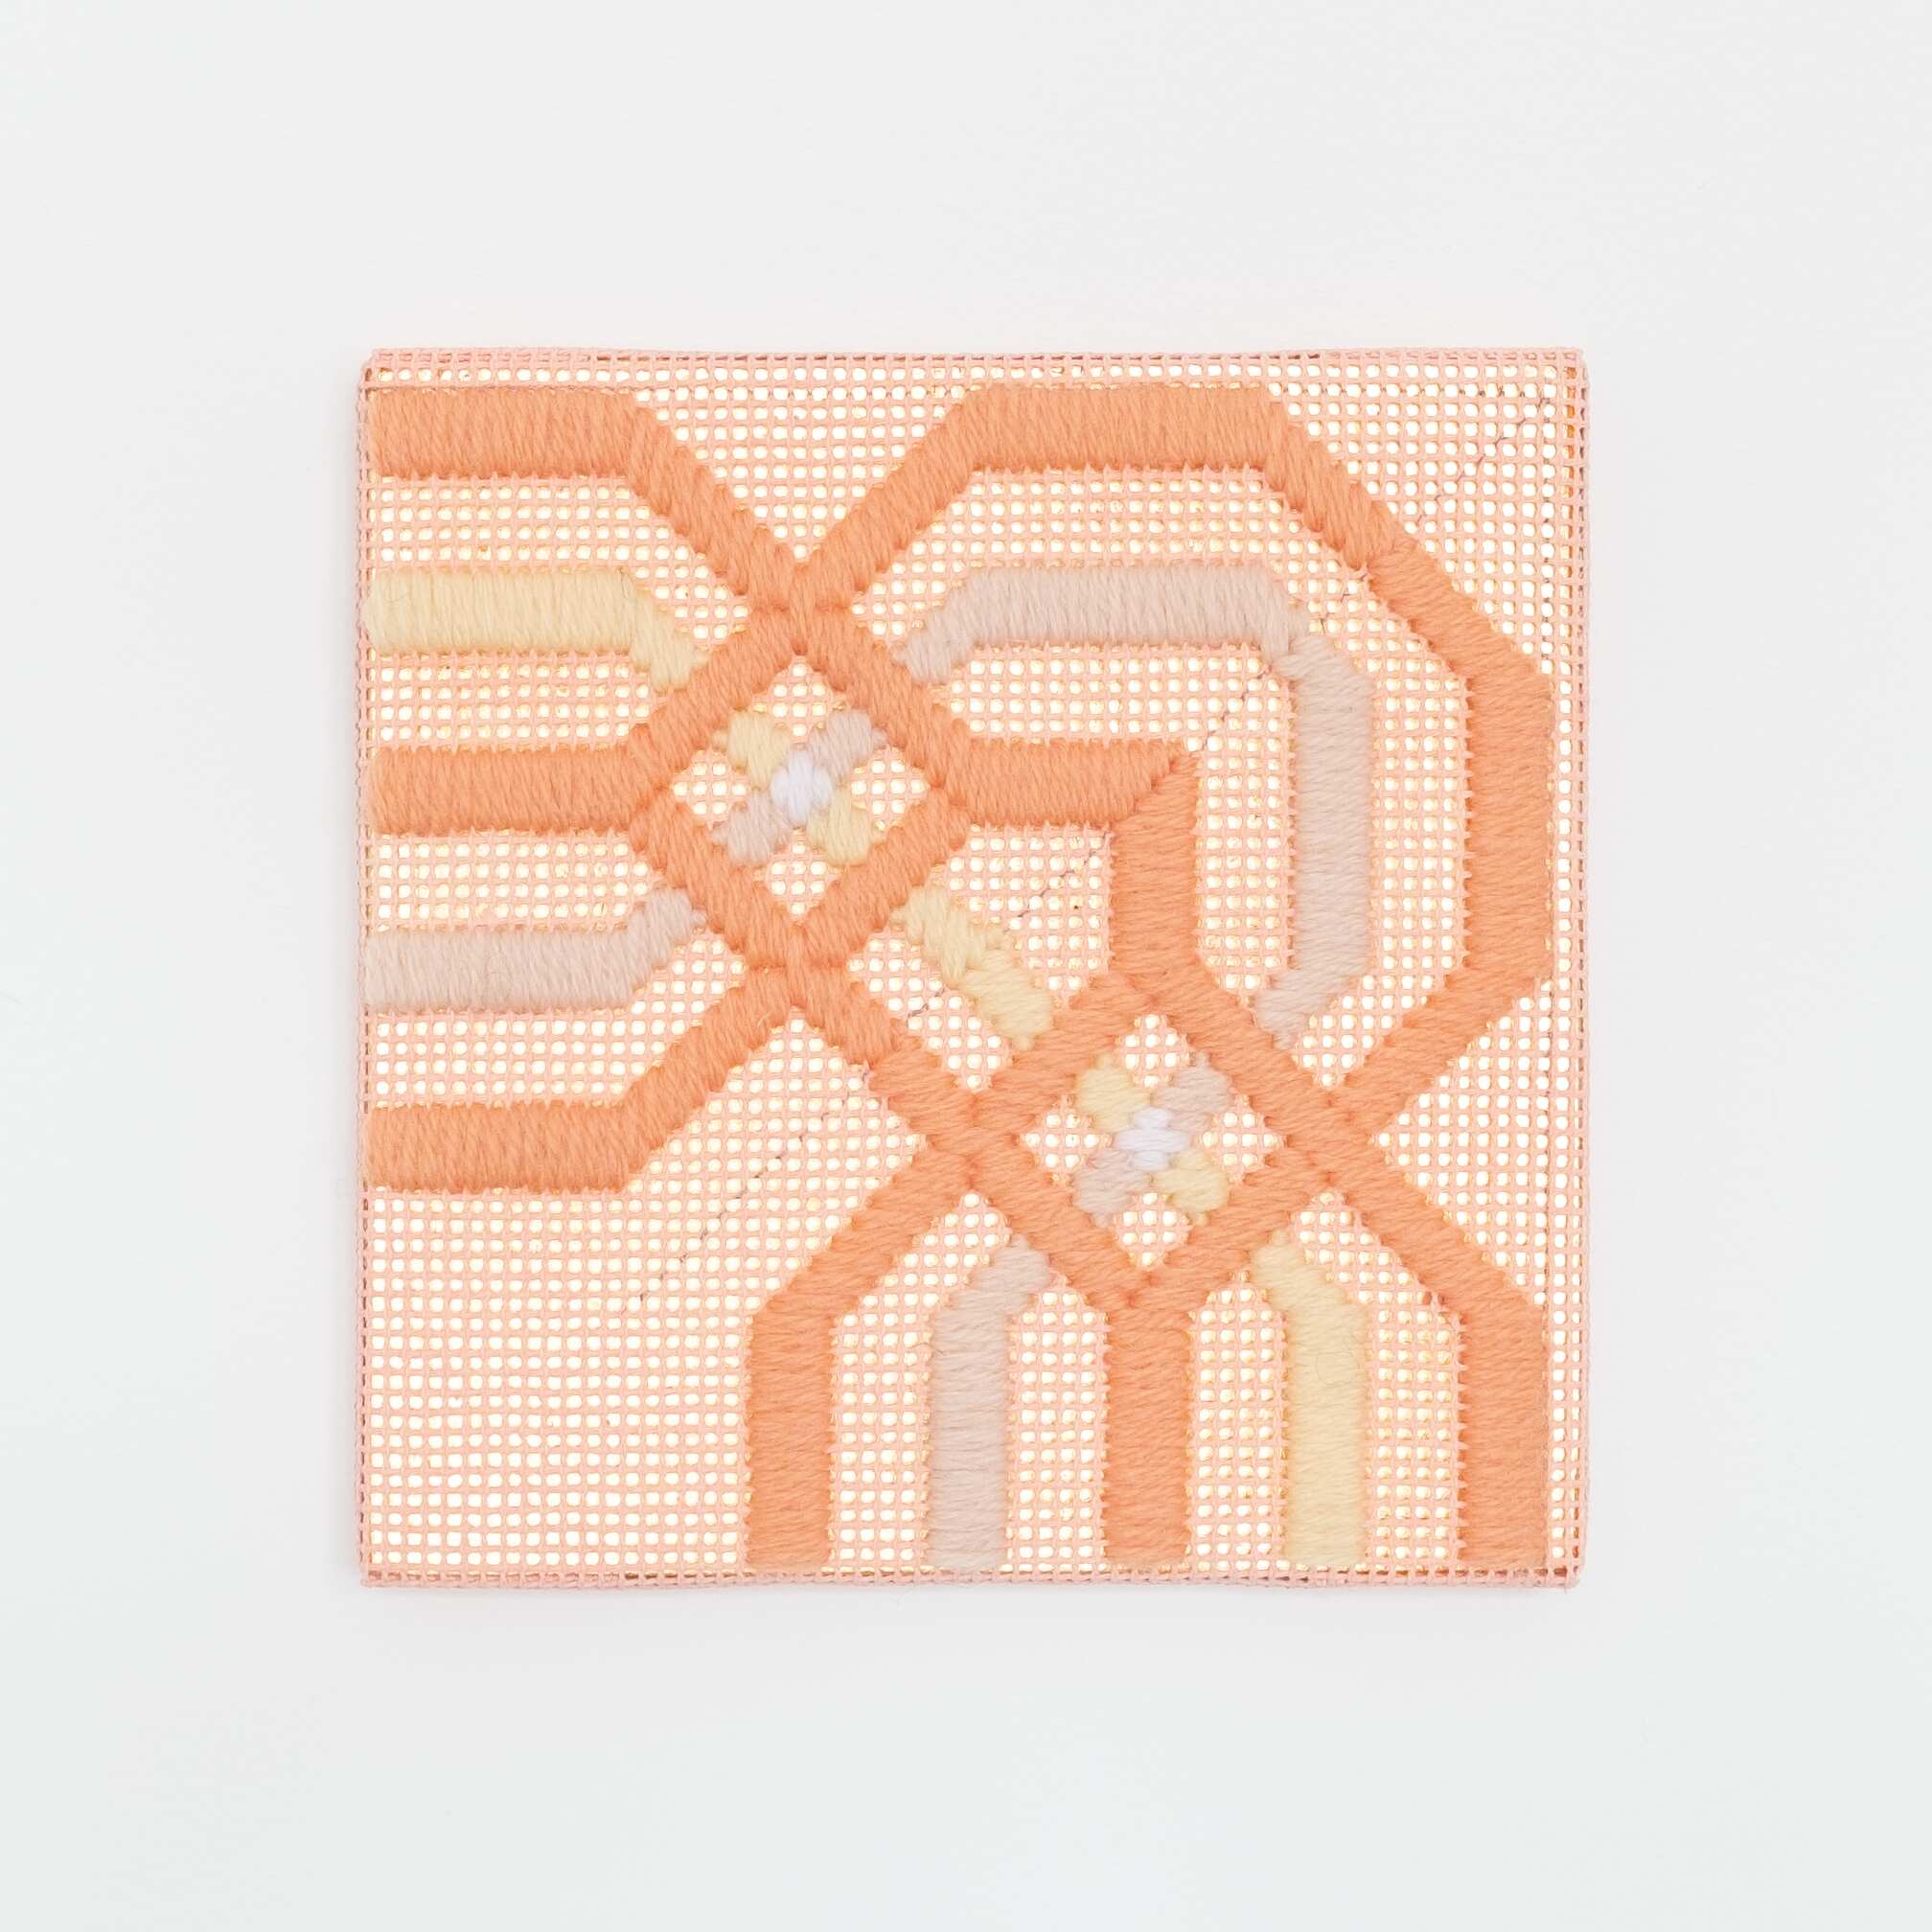 Border fragment [peach-yellow on peach], Hand-embroidered wool thread and acrylic paint on canvas over gilded panel, 2021